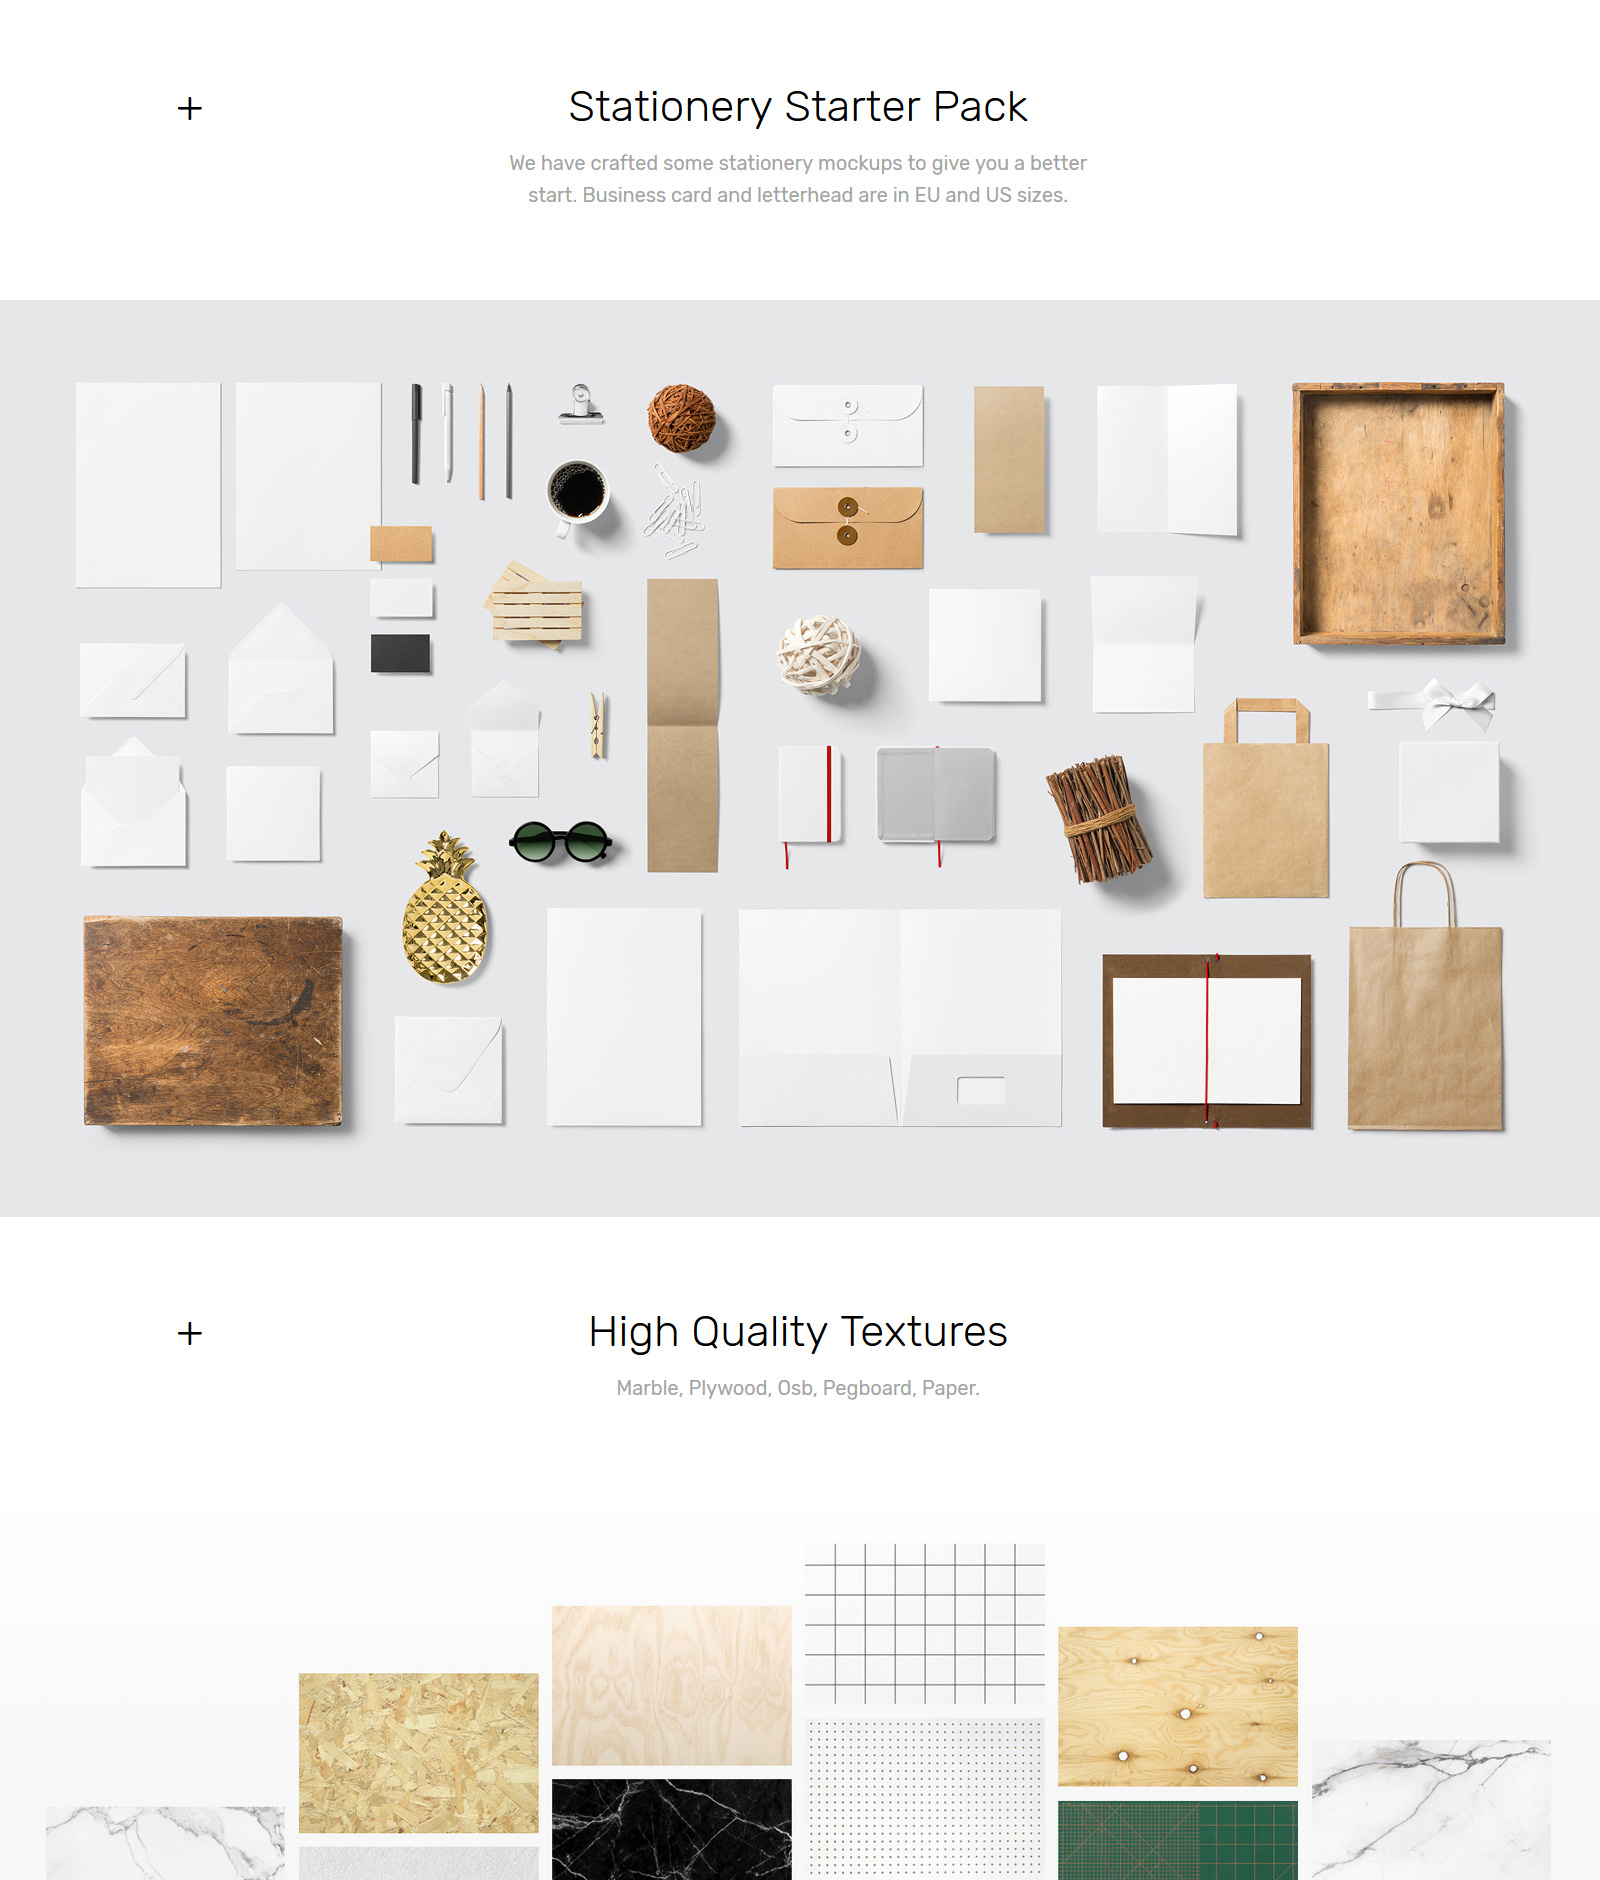 20 Letterhead Templates Mockups That Will Save You Time: Floral Mockups + Stationery Pack In Stationery Mockups On